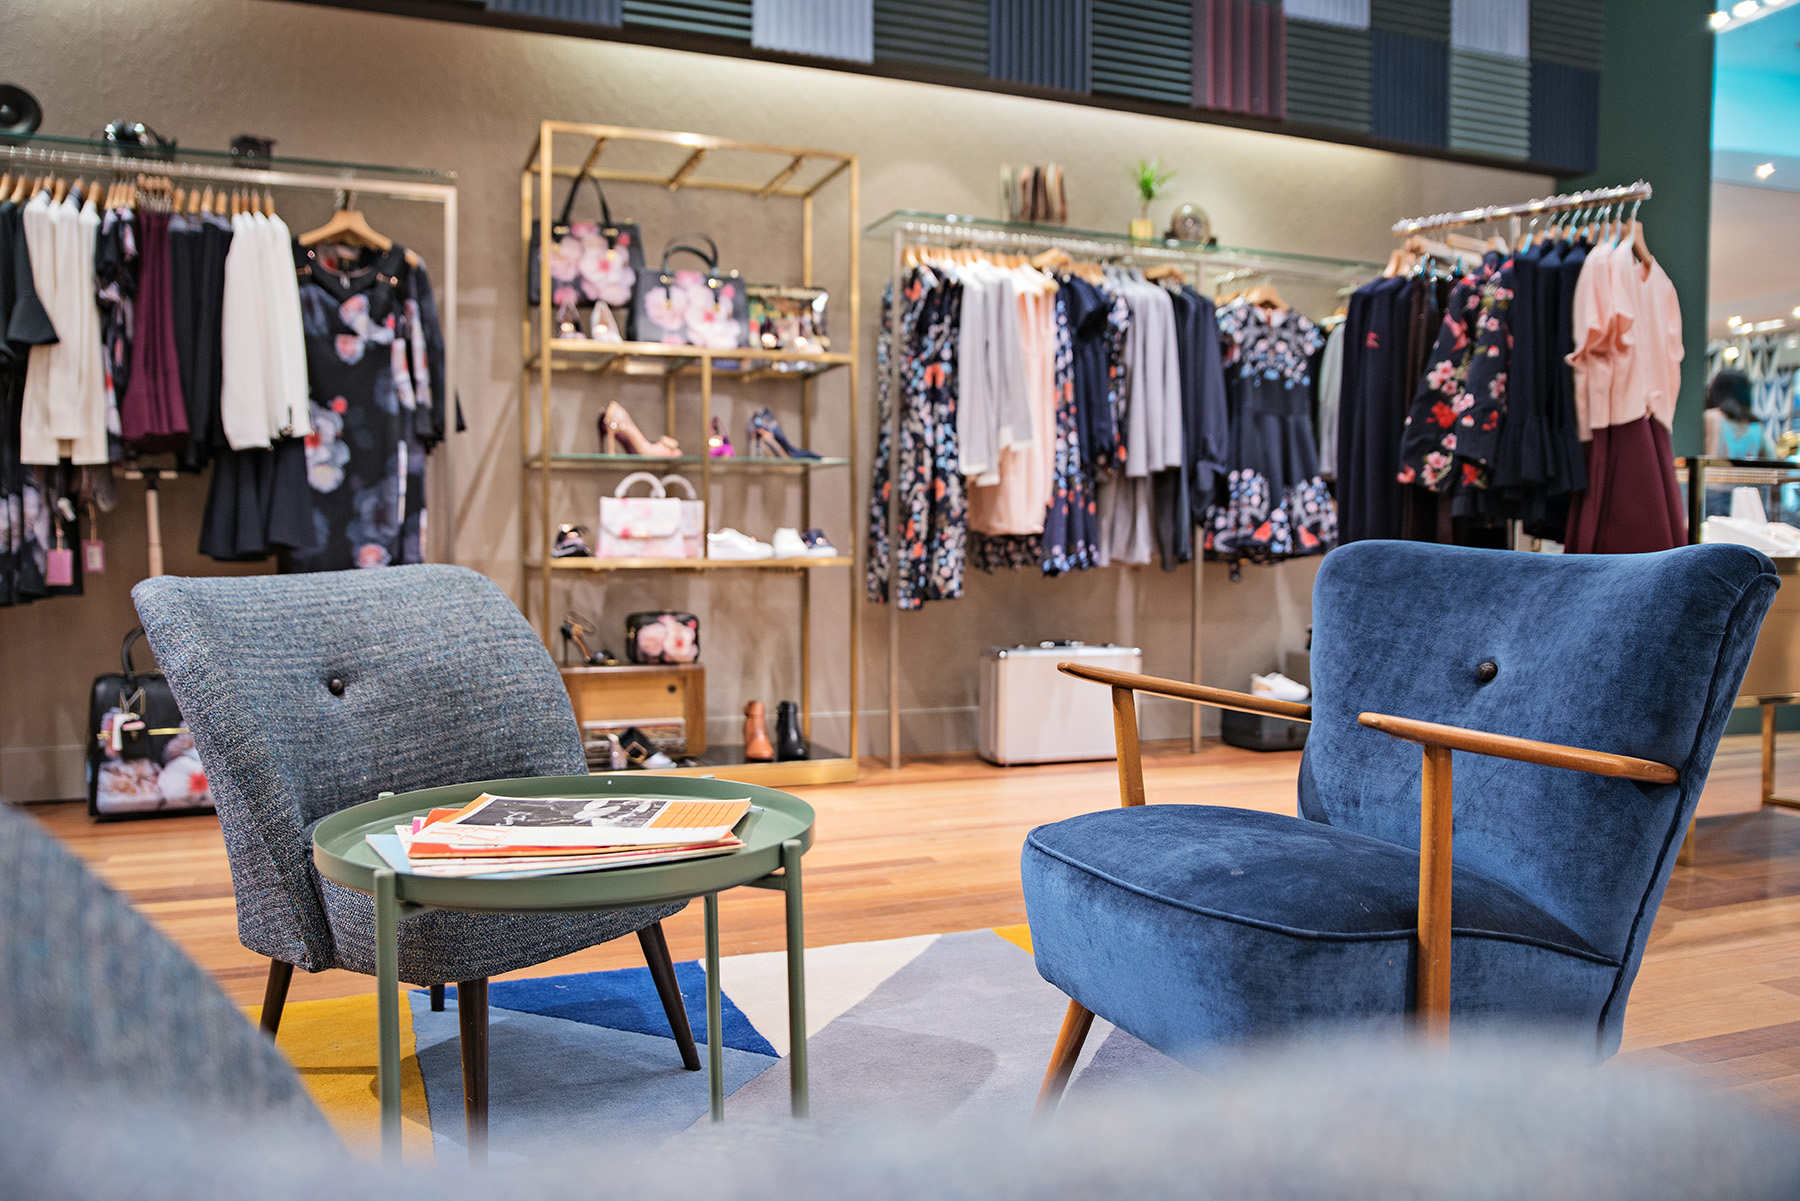 Charming On Assignment: Retail Interior Photography U2013 Ted Baker Store In Carrefour  Laval U2013 Montreal